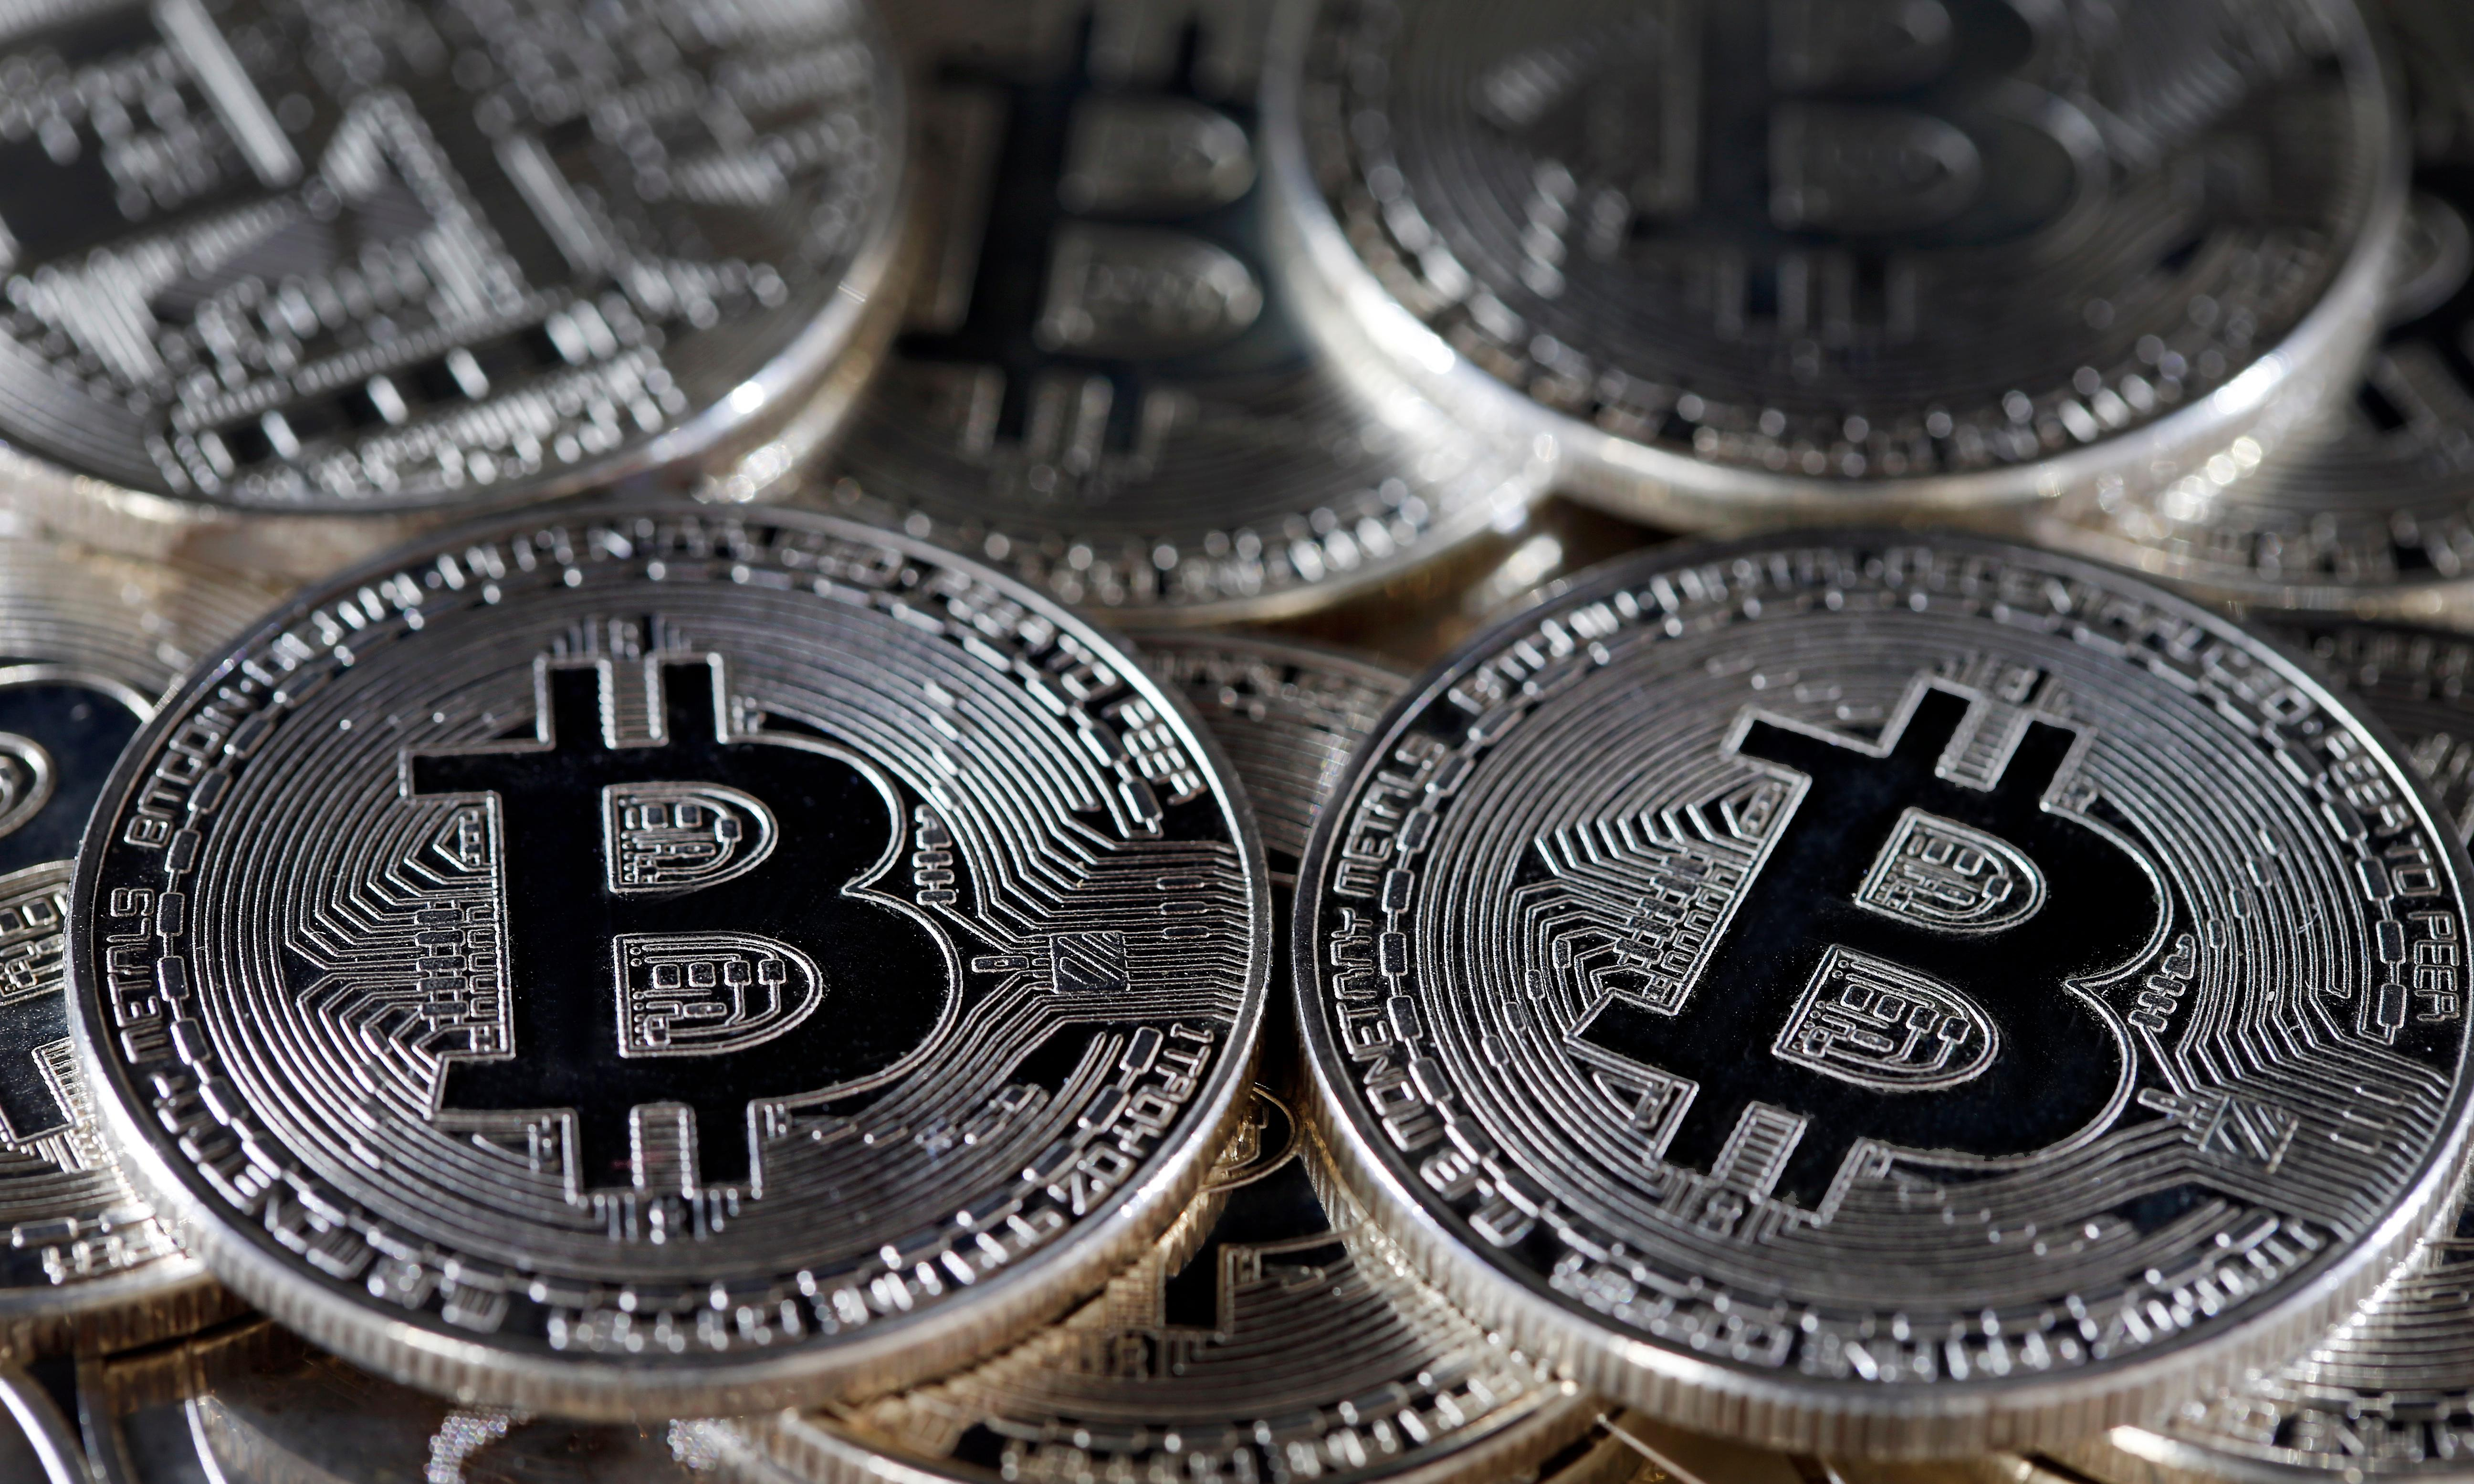 Bitcoin price falls below $10,000 as boost from Facebook's Libra fades